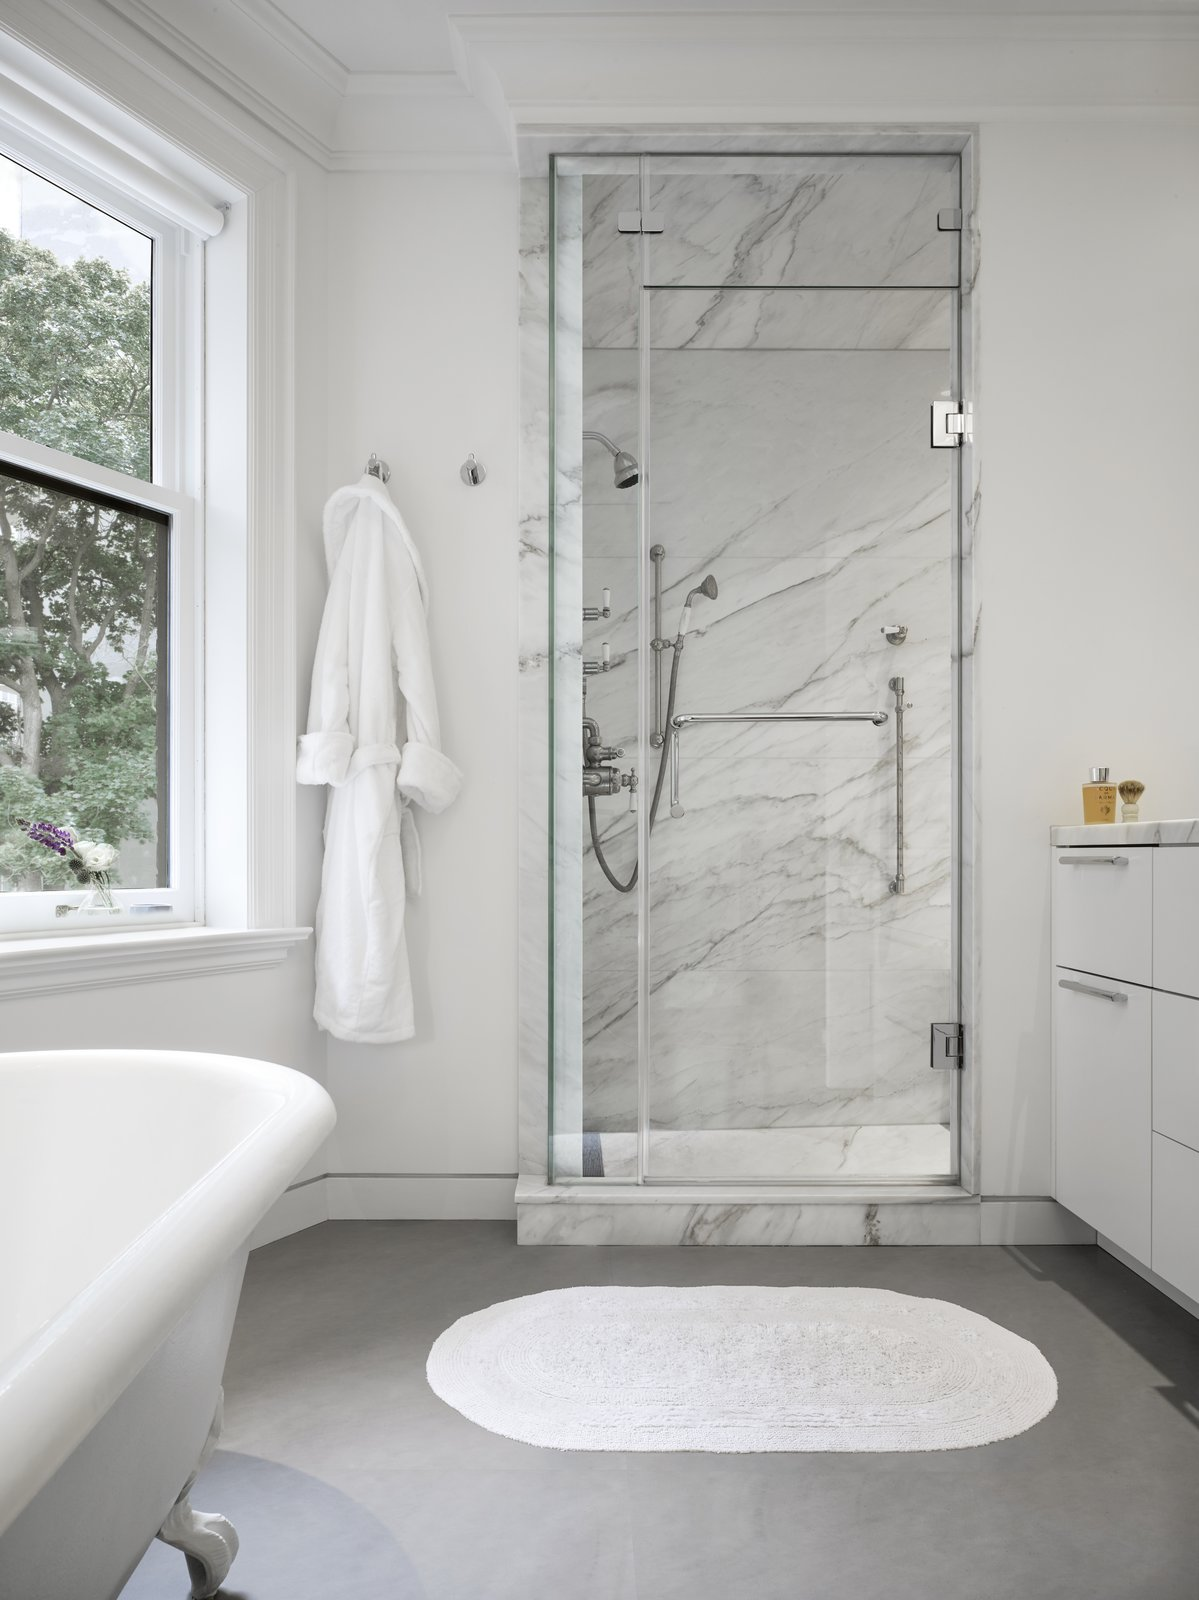 Bath, Enclosed, Freestanding, Marble, Slate, and Rug The master bedroom also has a marble-clad ensuite bathroom.   Bath Freestanding Enclosed Slate Photos from An Elegant Edwardian Home Is Treated to a Thoughtful Revamp